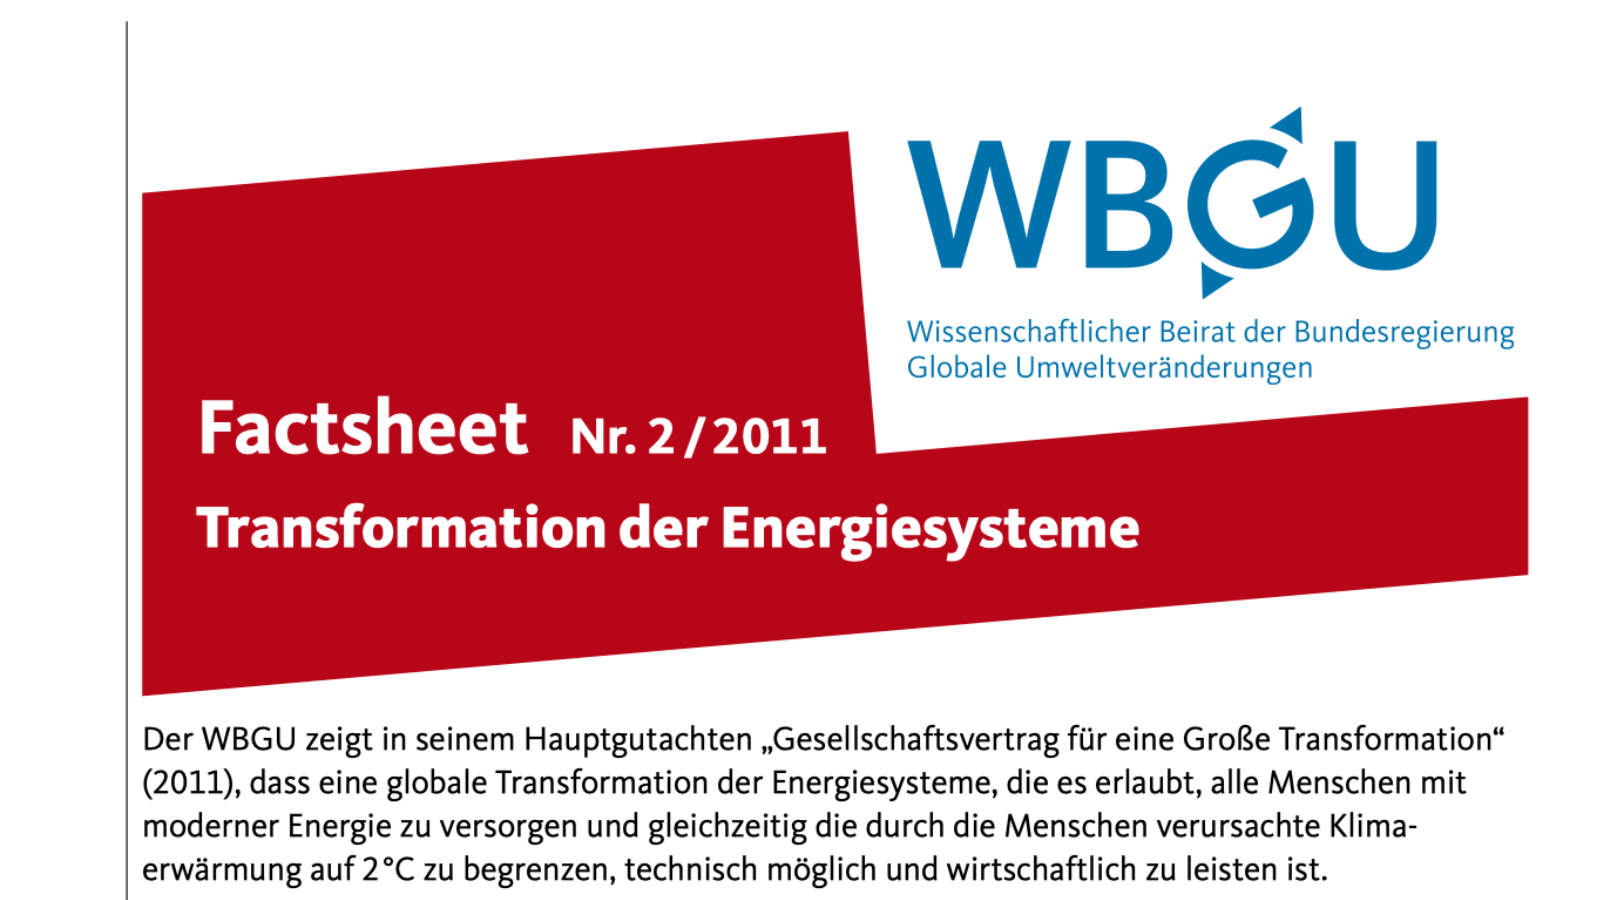 Factsheet: Transformation der Energiesysteme